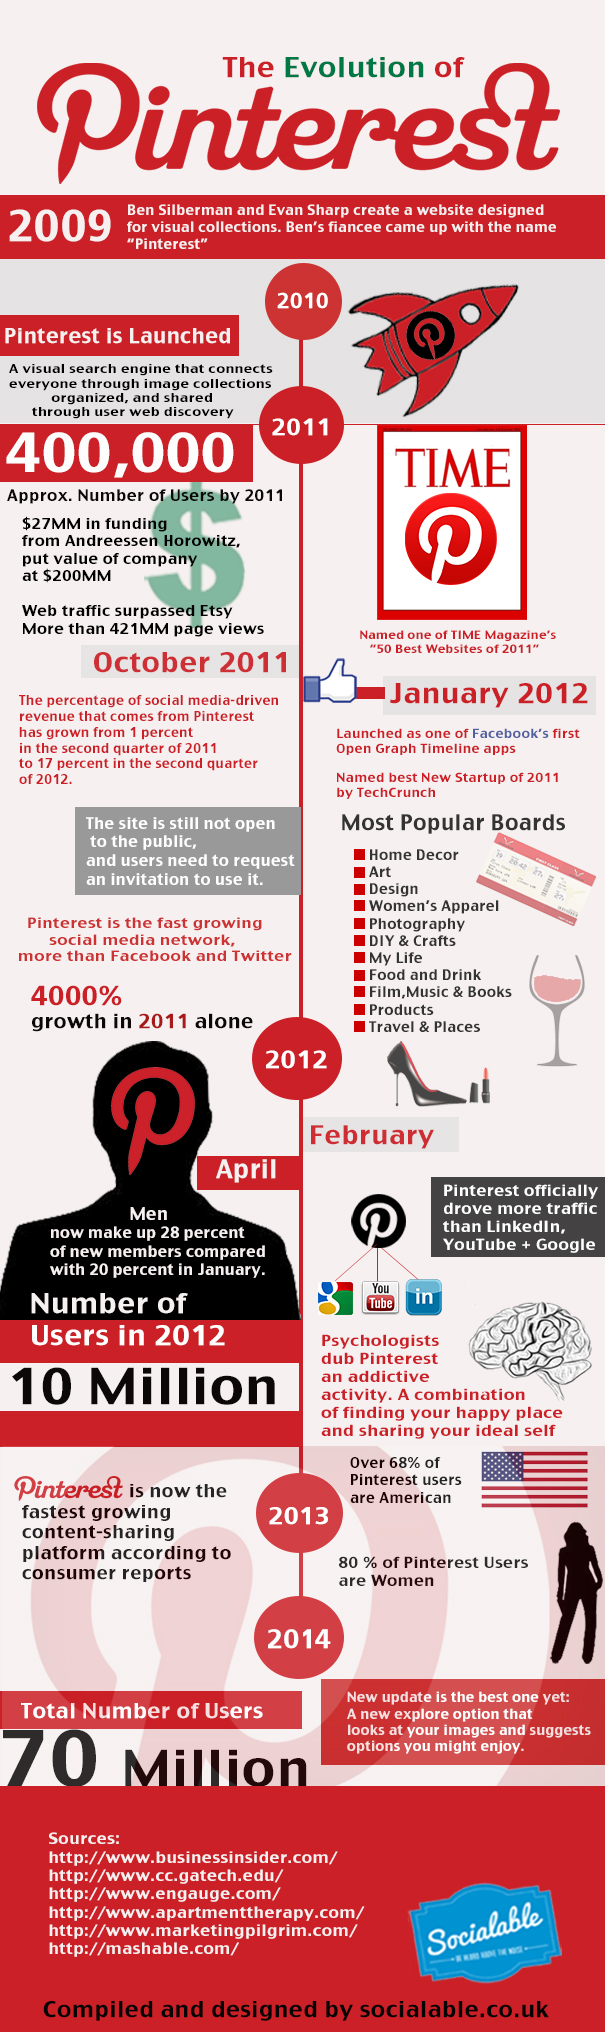 The Evolution of Pinterest Journey from 2009 to 2014